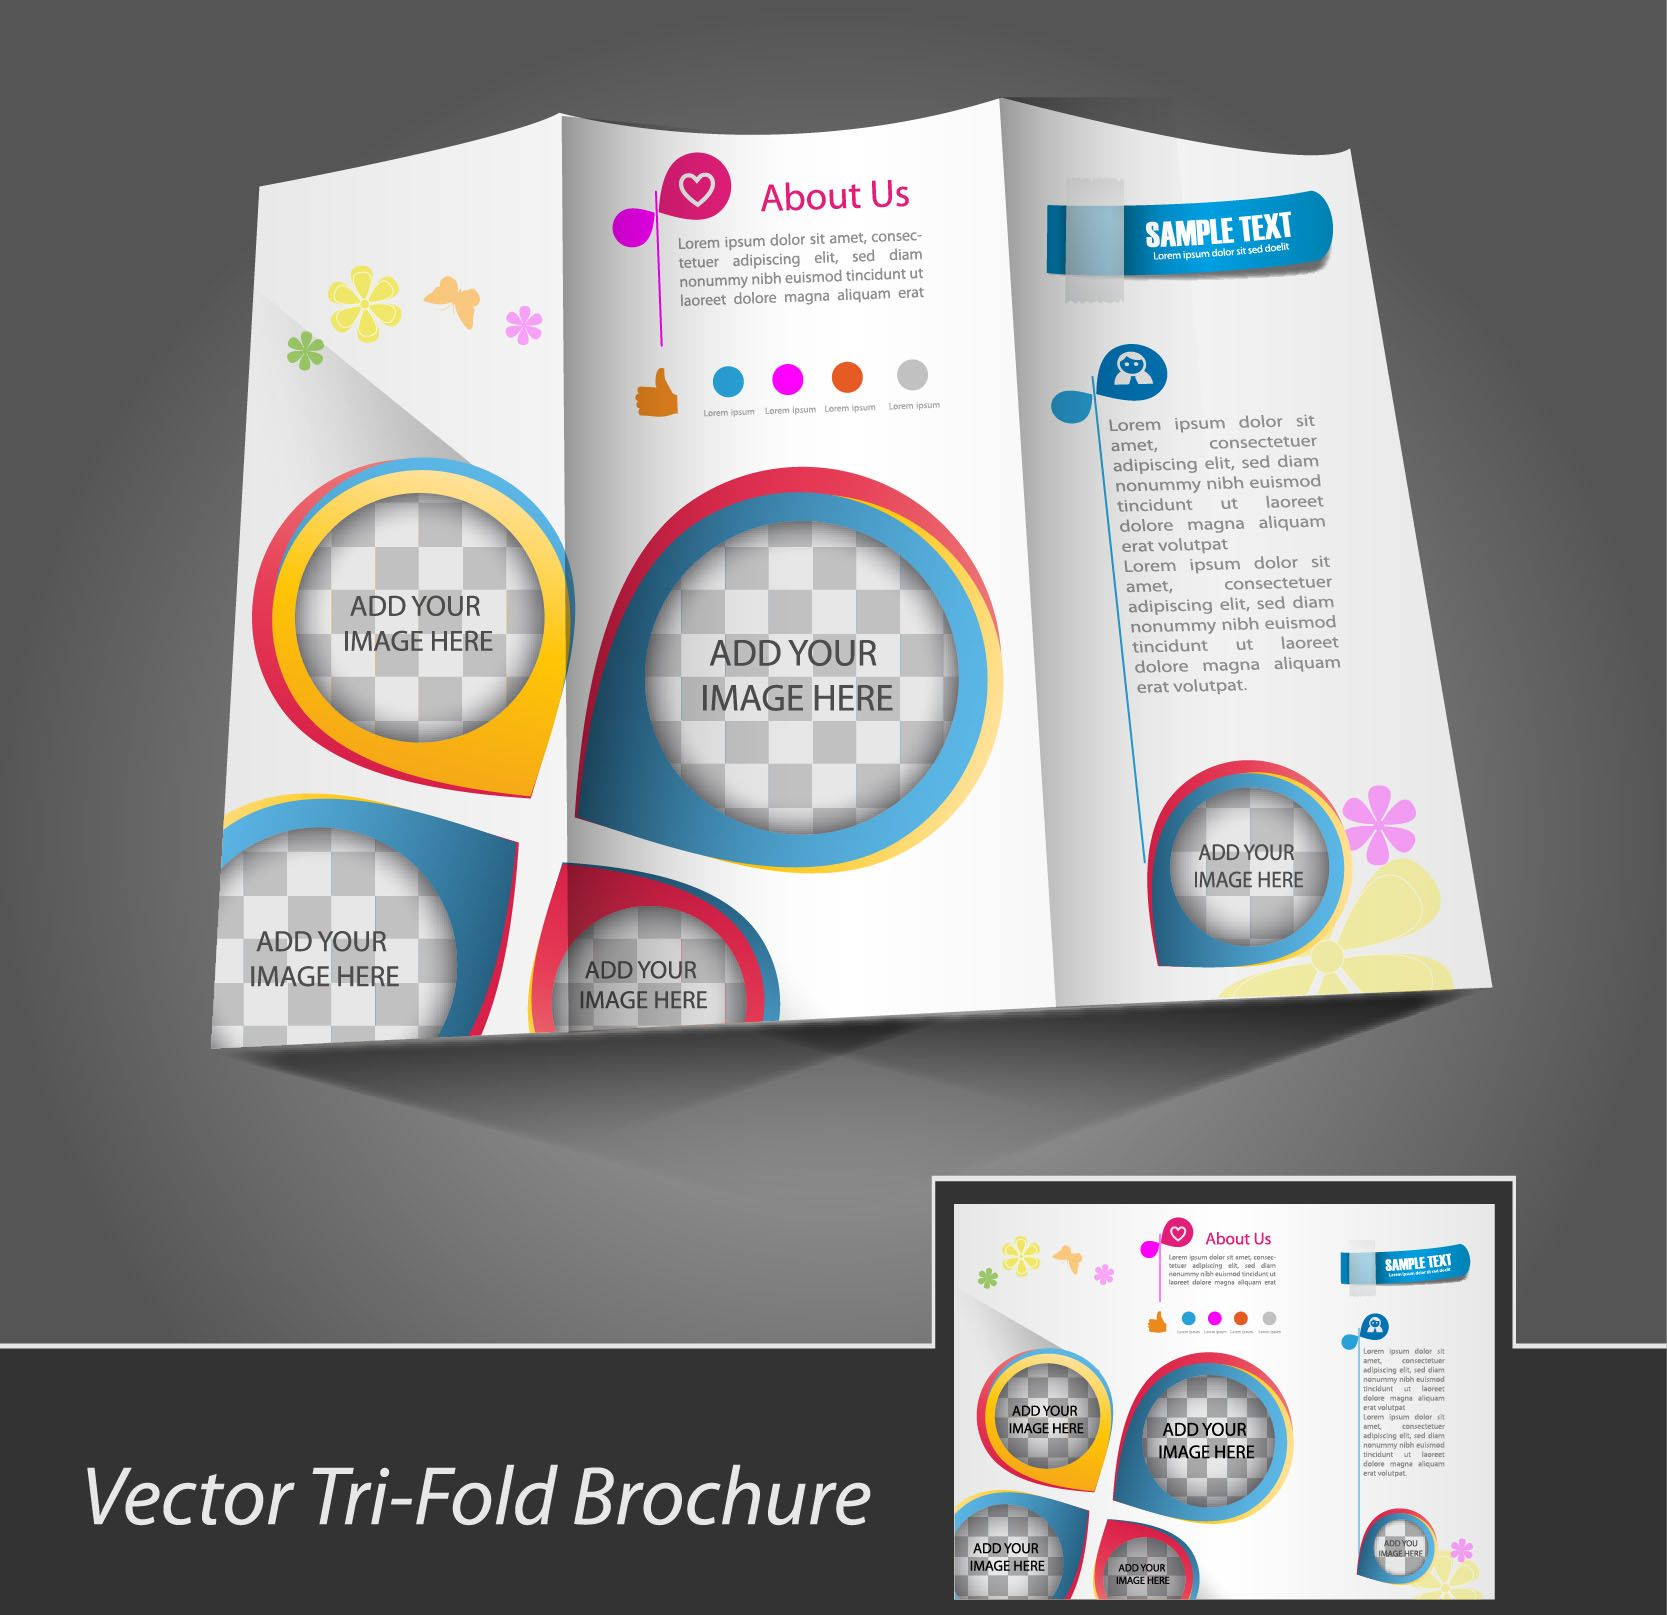 discover ideas about templates free - Art Brochure Templates Free